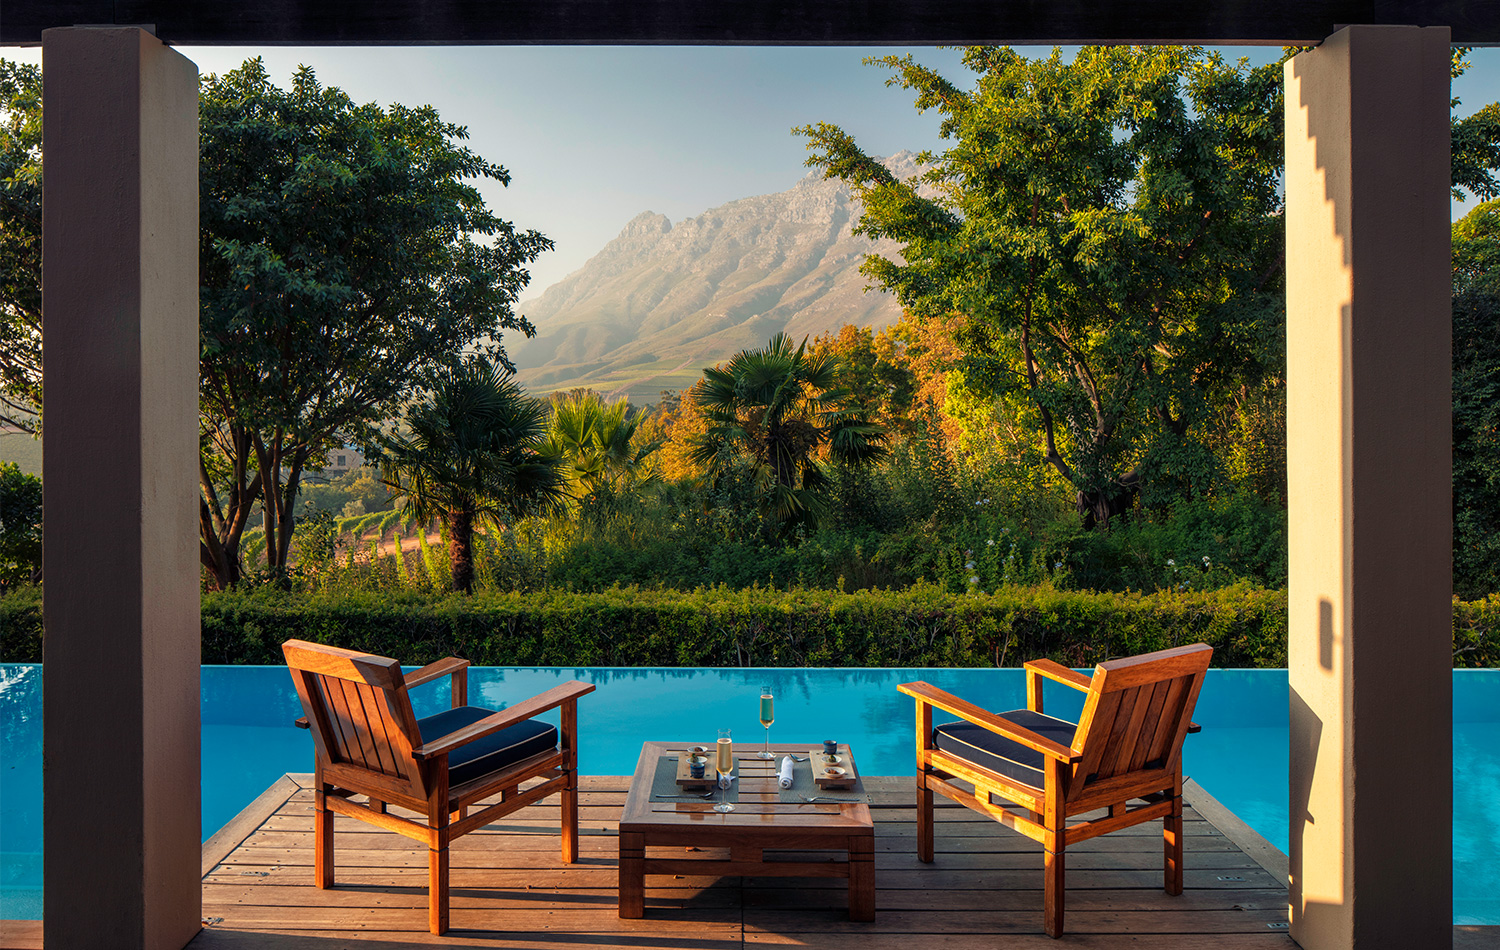 Presidential Lodge 2 terrace and 12 metre swimming pool overlooking Stellenbosch mountains at Delaire Graff Estate South Africa